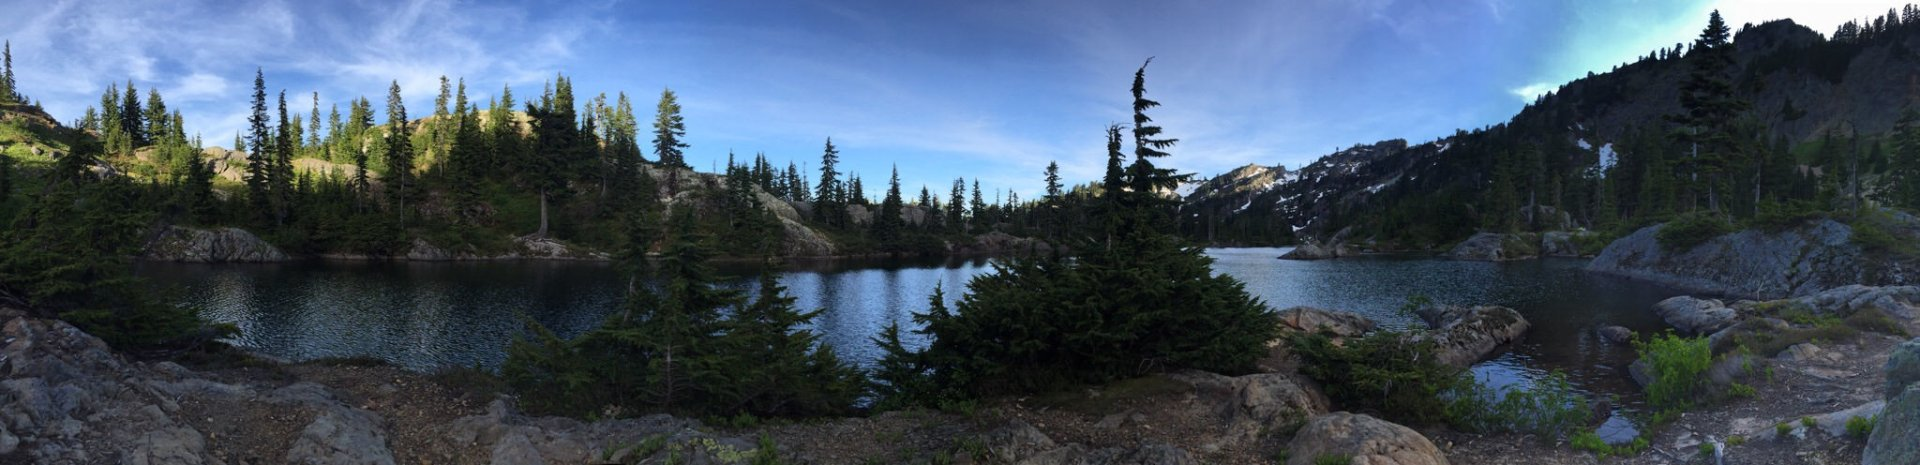 Sweet place to watch a sunset, sunrise, and stargaze from a hammock at Rampart Lakes.